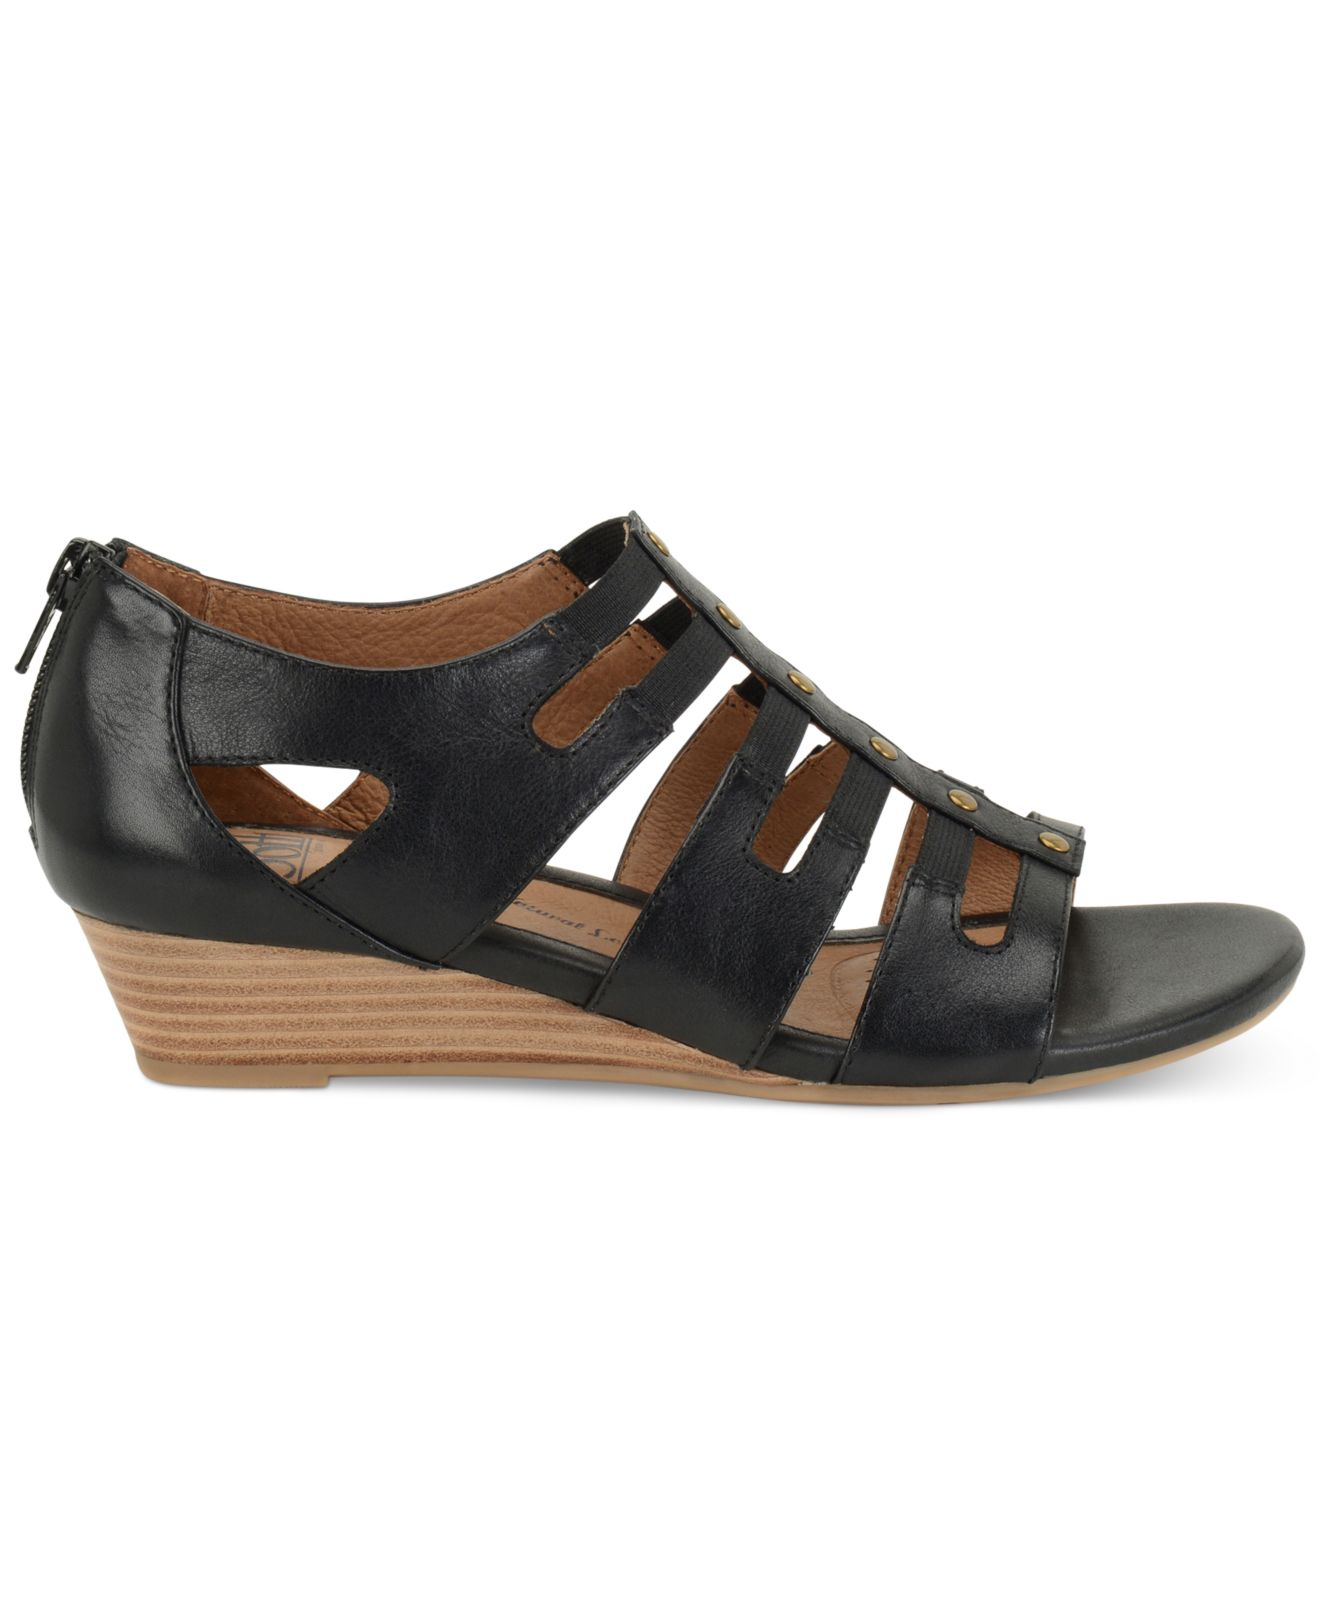 s 246 fft ilana wedge sandals in black lyst